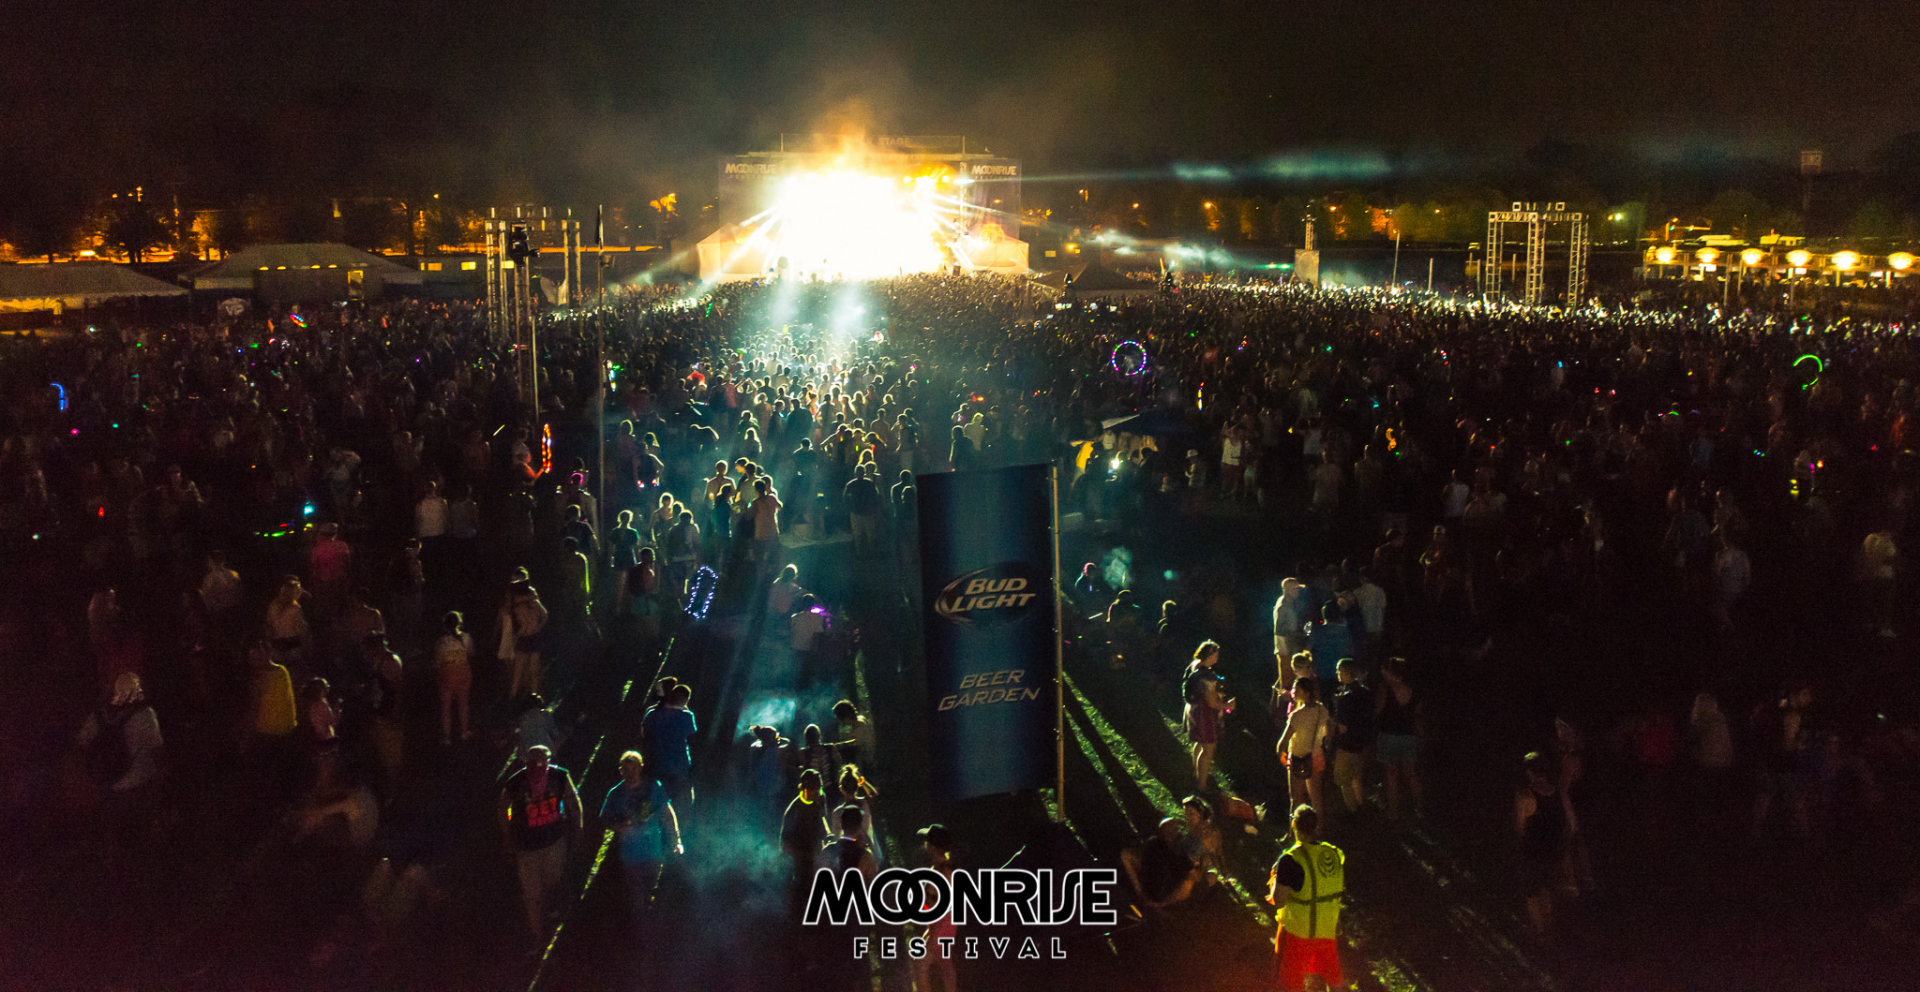 Moonrise_day2-111